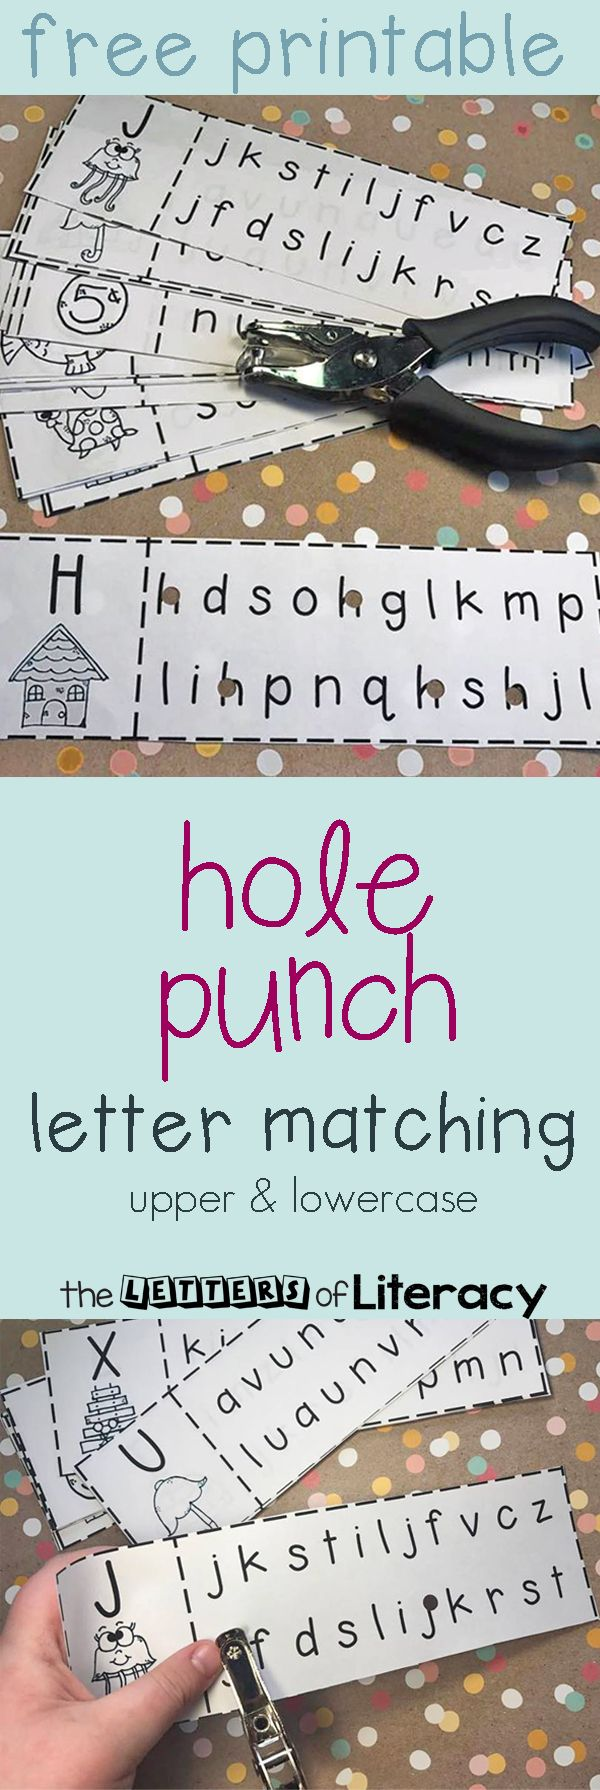 Upper & Lowercase Letter Matching Hole Punch Activity